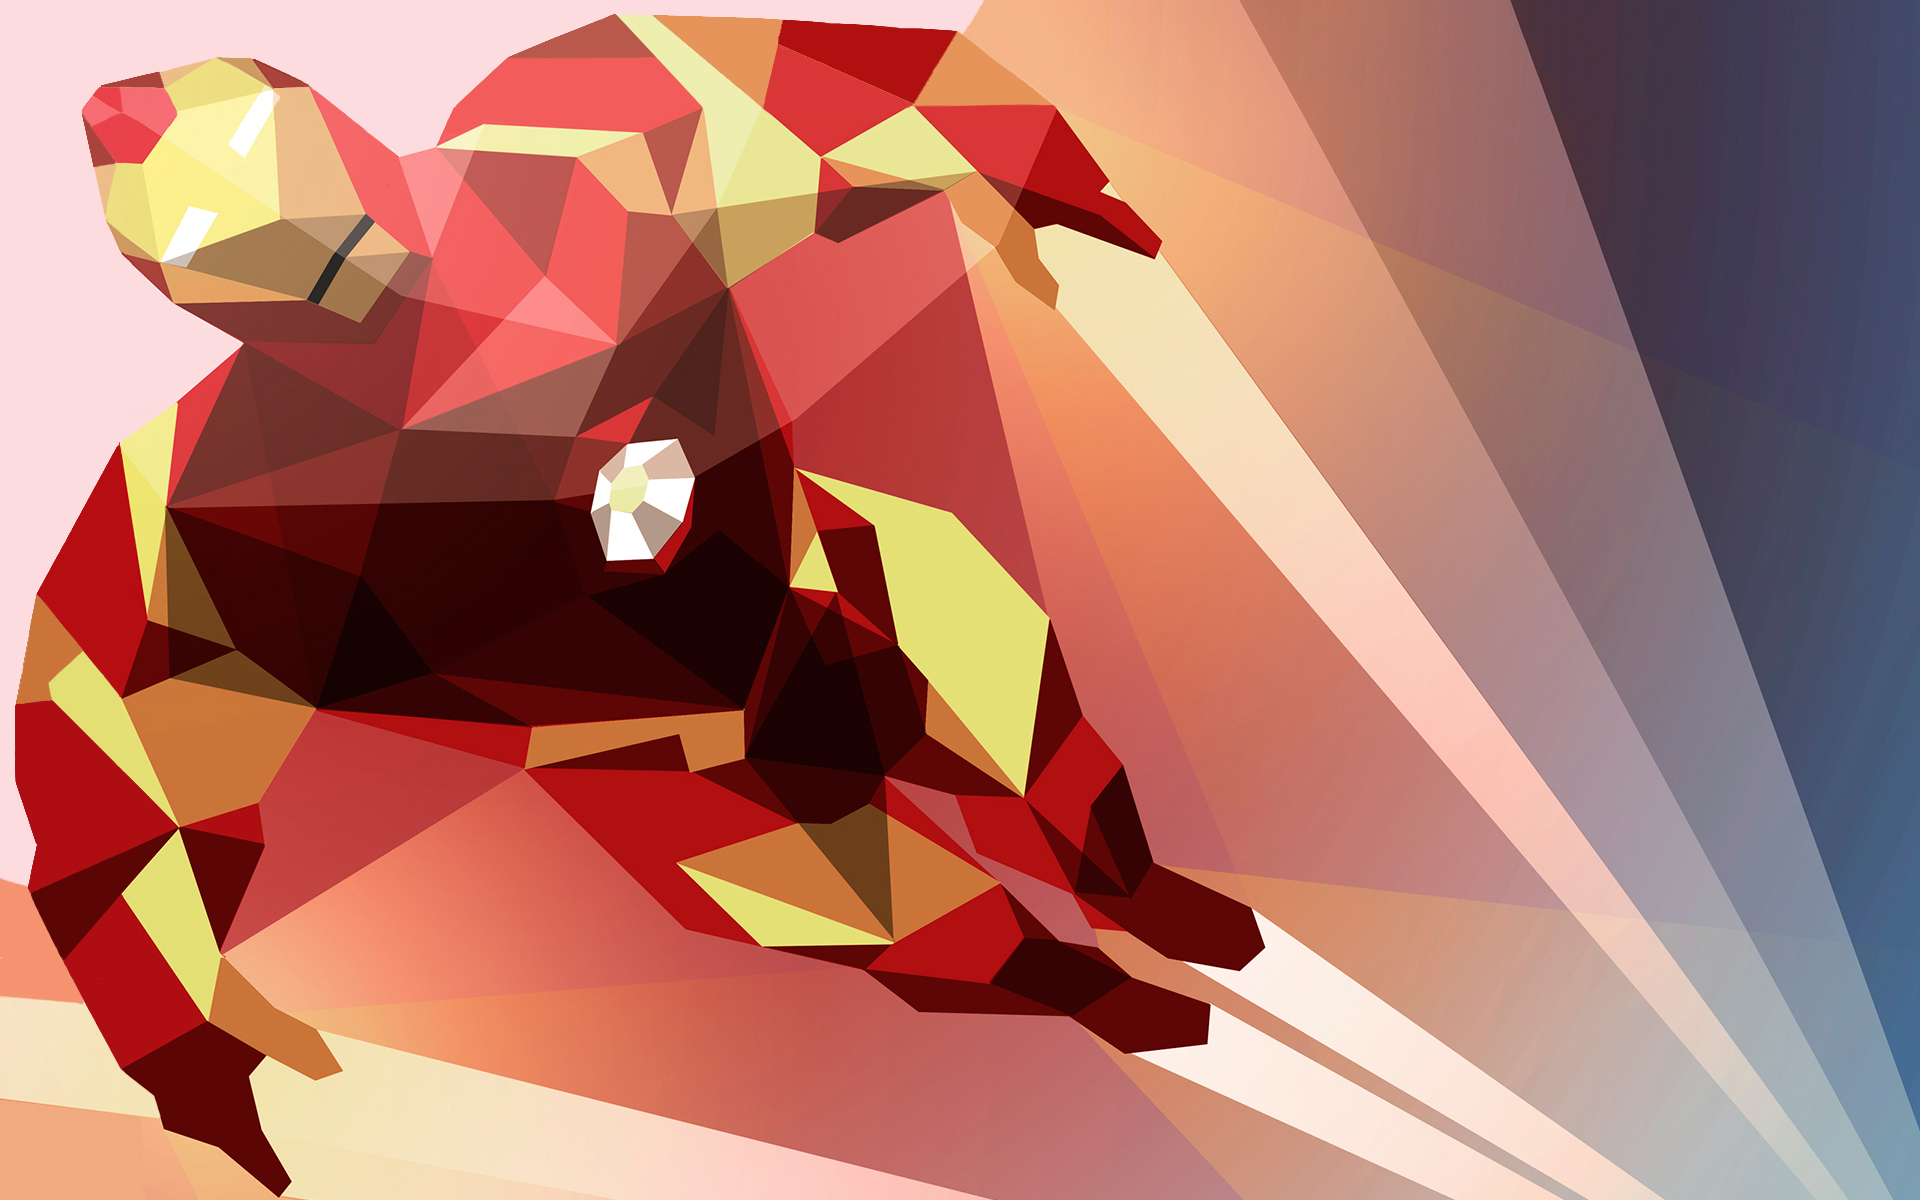 Beautiful Wallpaper Minecraft Abstract - 309511  You Should Have_584781.jpg